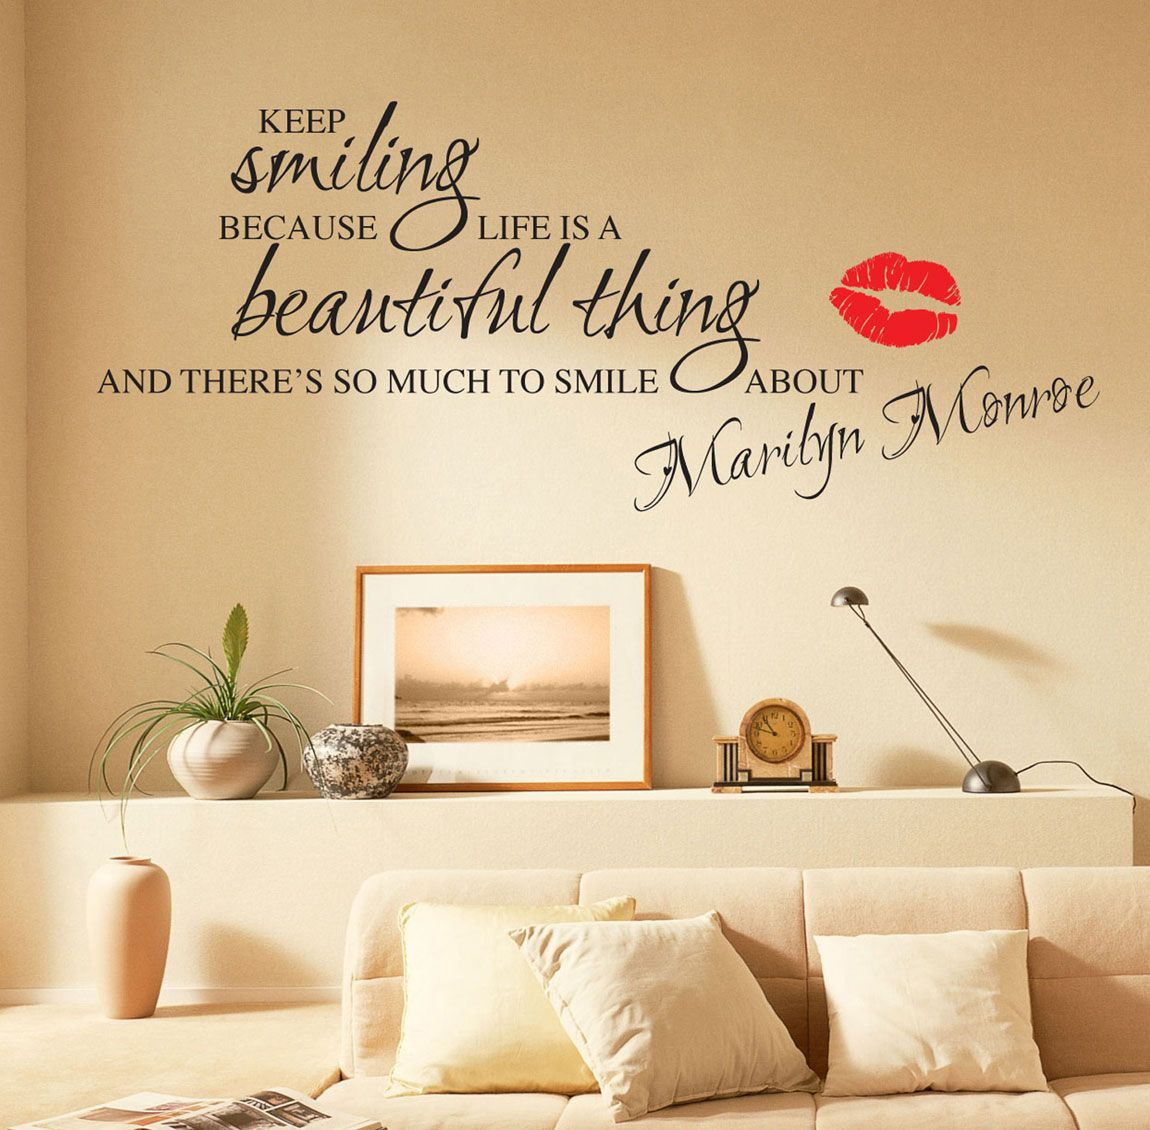 Sayings For Your Living Room Wall Google Search Simple Wall Decor Home Decor Wall Quotes Decals